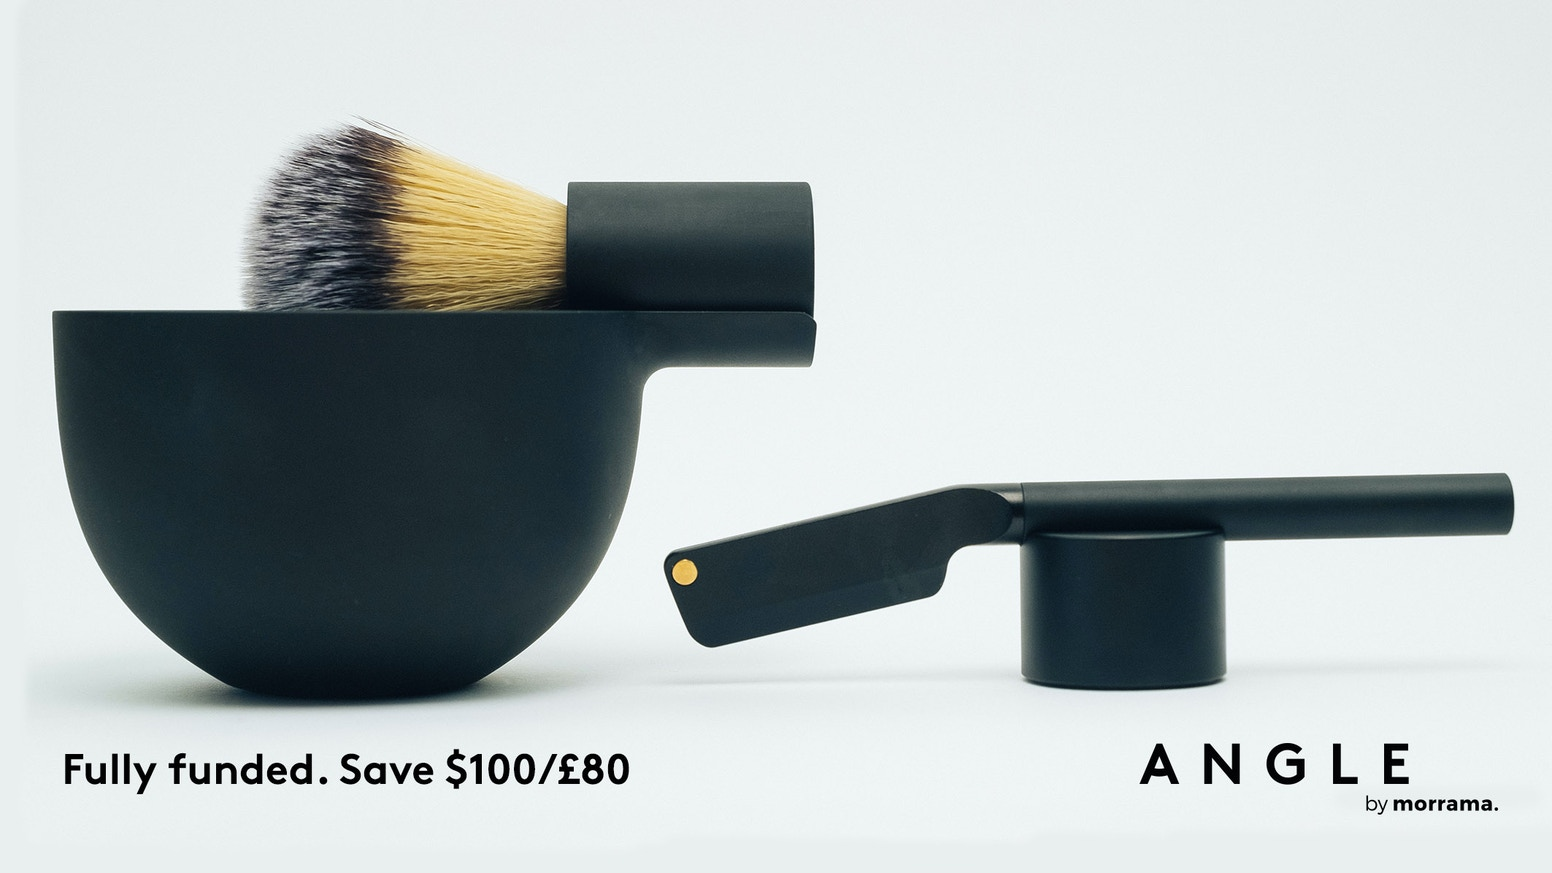 A minimal brush and bowl designed to embrace the ritual of shaving